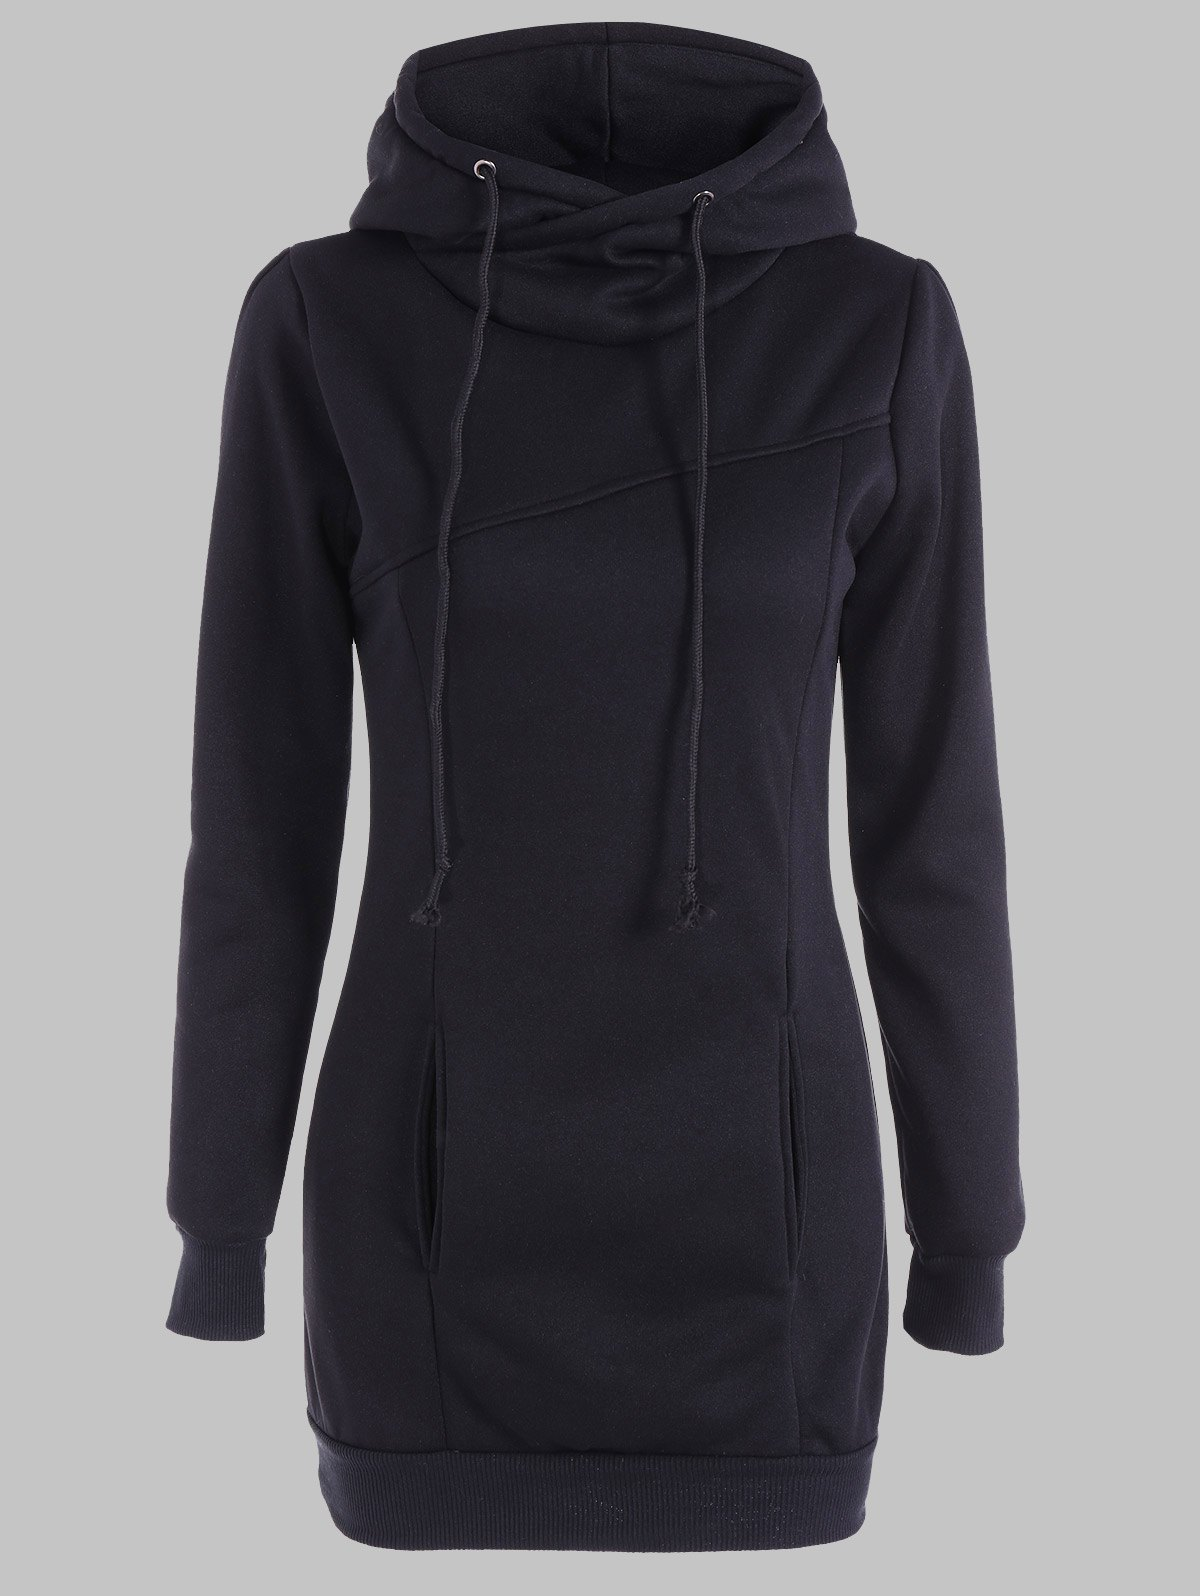 Slimming Pullover Pockets Design HoodieWOMEN<br><br>Size: 2XL; Color: BLACK; Material: Polyester; Shirt Length: Long; Sleeve Length: Full; Style: Casual; Pattern Style: Solid; Season: Fall,Spring; Weight: 0.470kg; Package Contents: 1 x Hoodie;